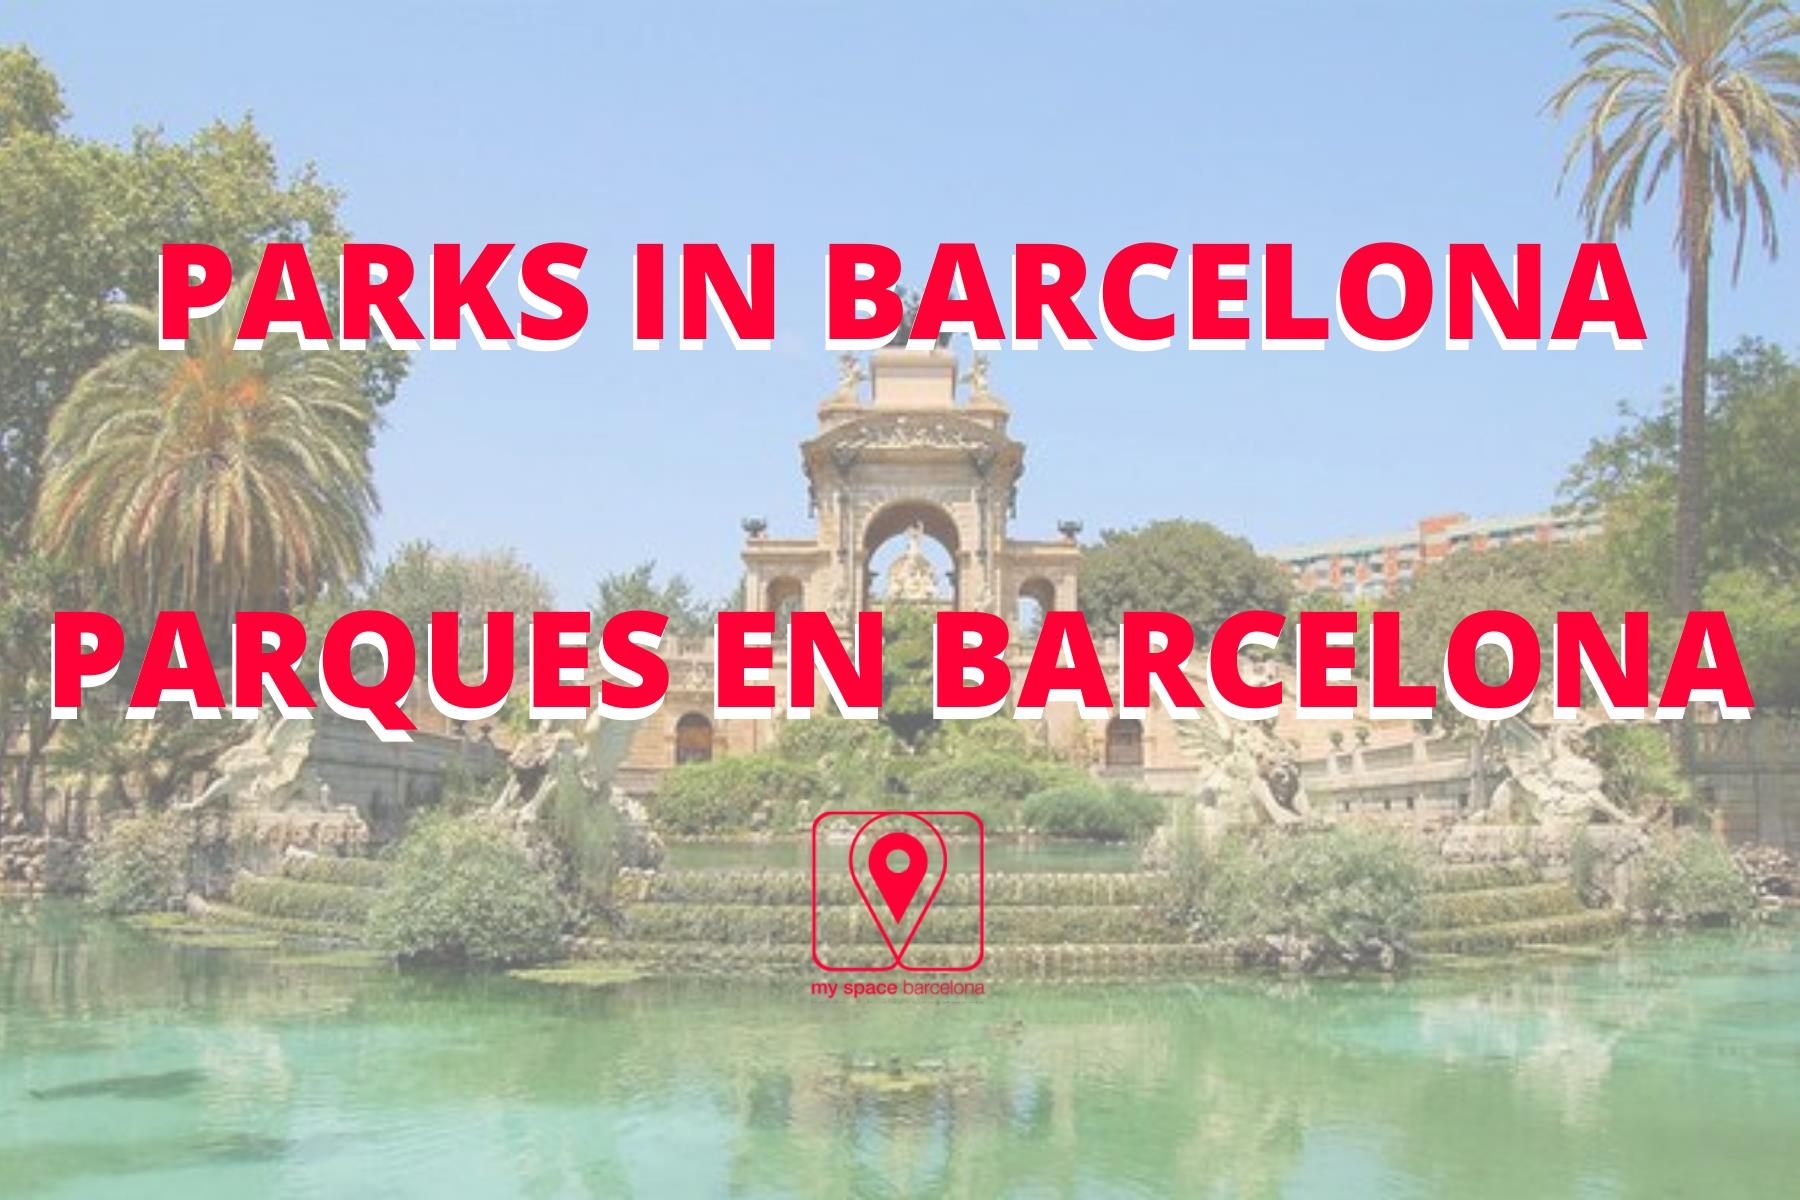 The 6 most beautiful parks in Barcelona